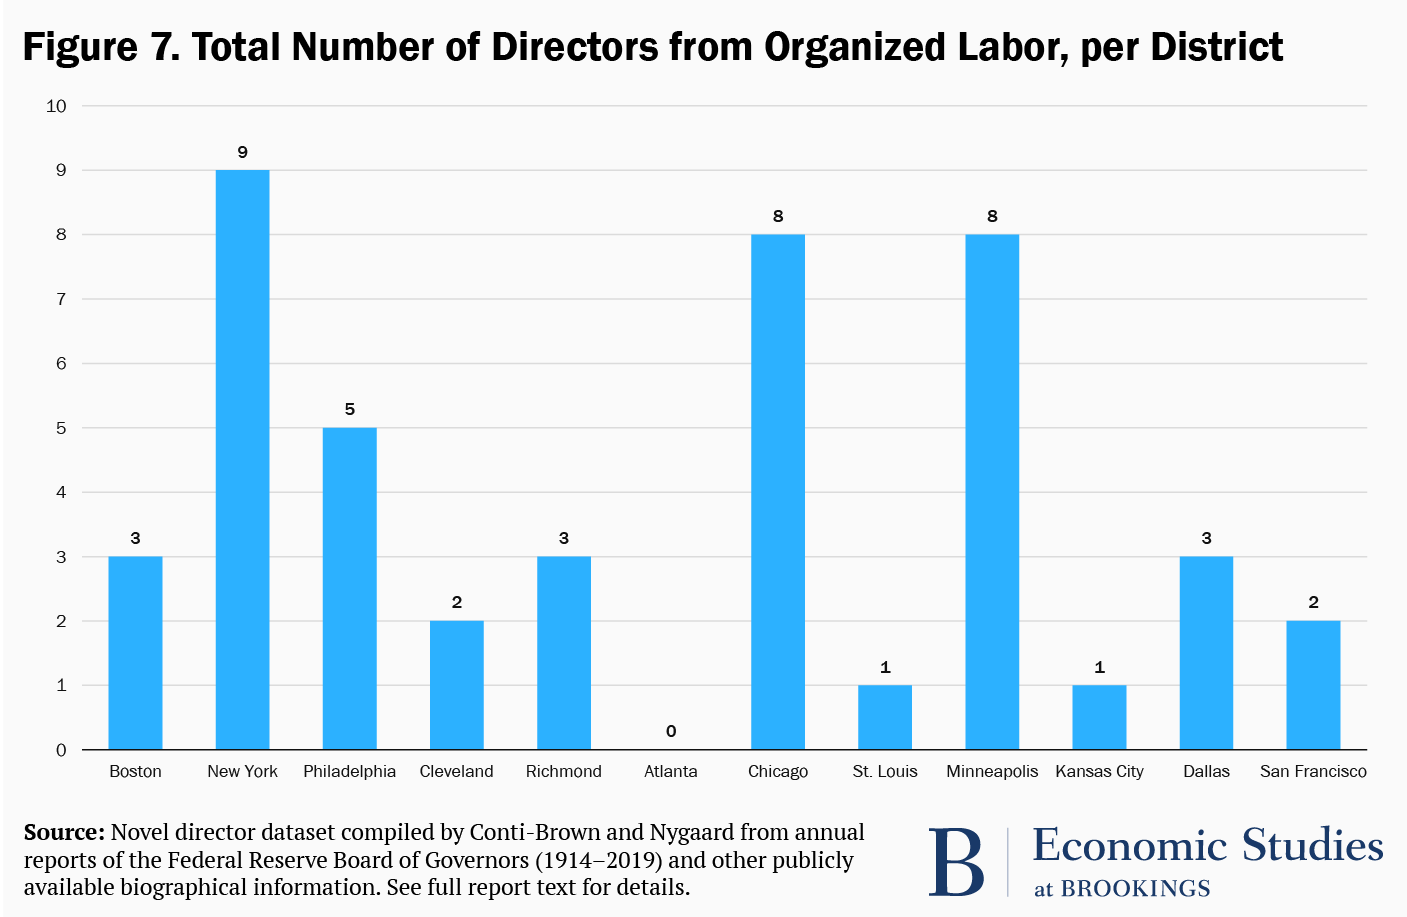 Figure 7. Total number of directors from organized labor, per district